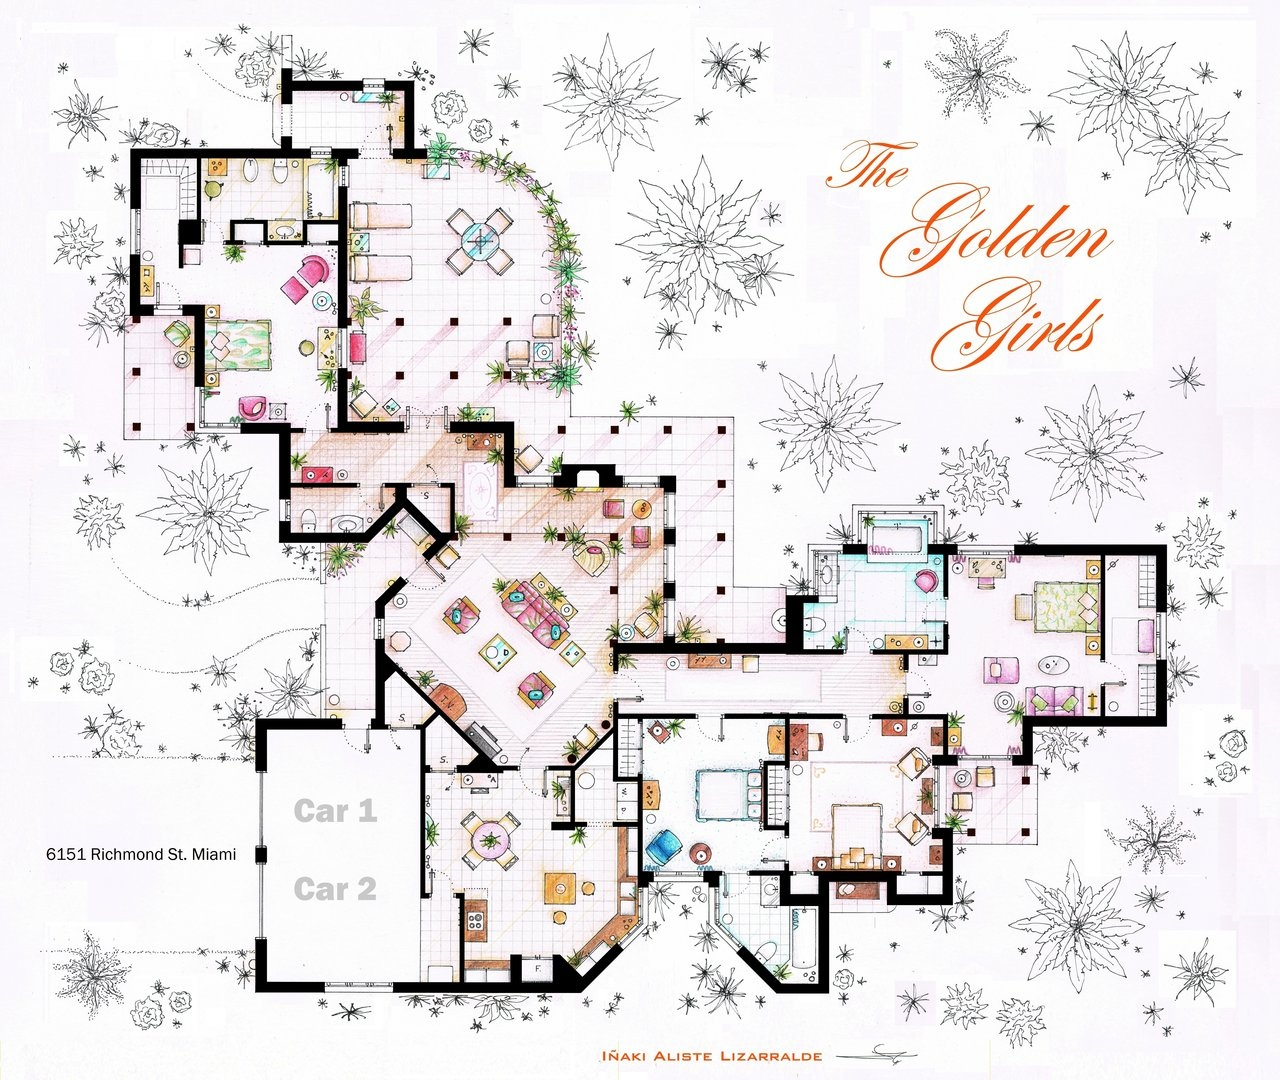 i love lucy apartment - Floor Plans For Houses